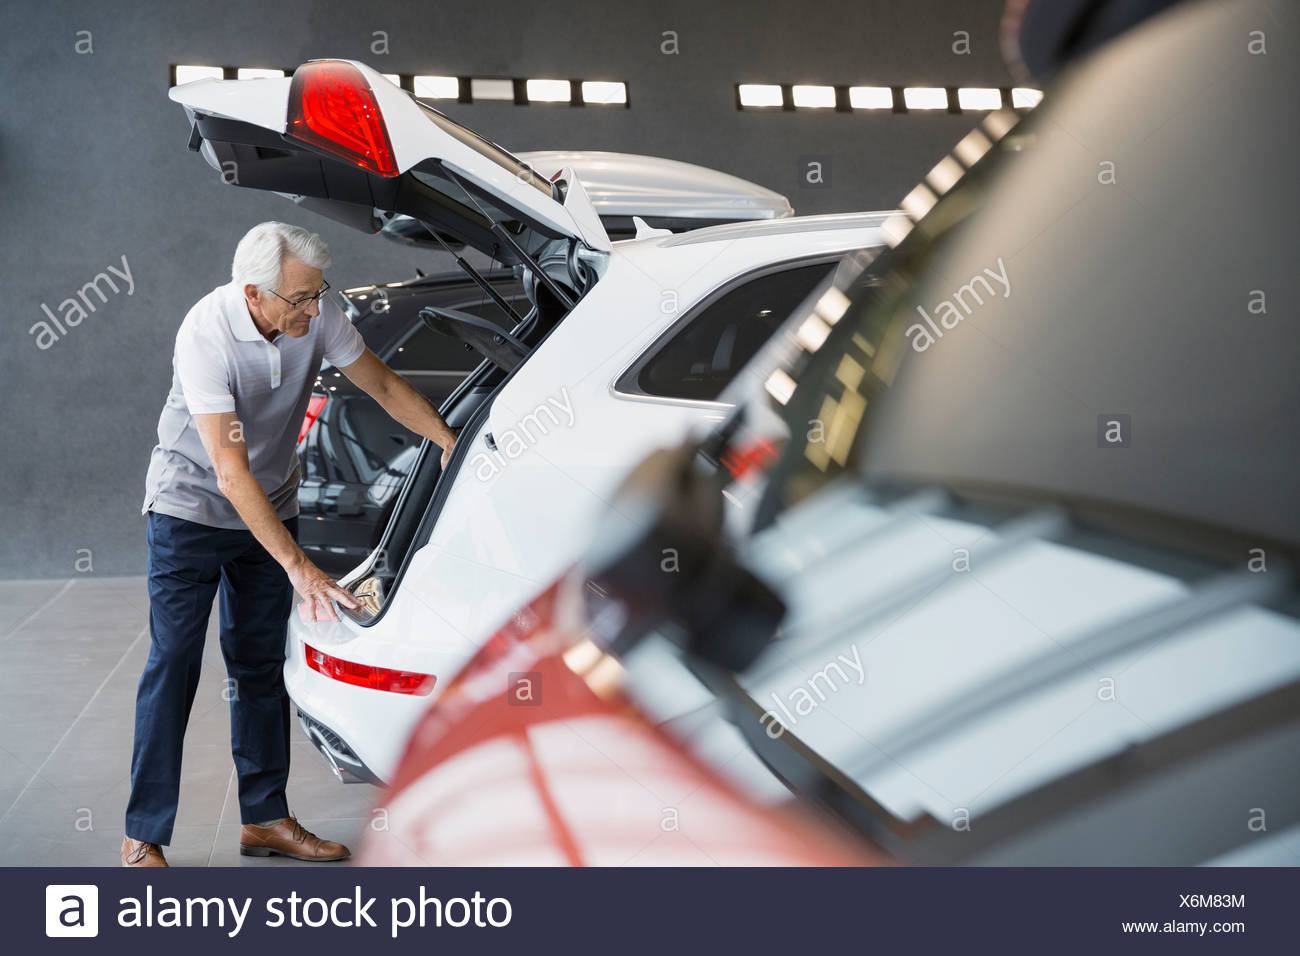 Man looking inside car in car dealership showroom - Stock Image